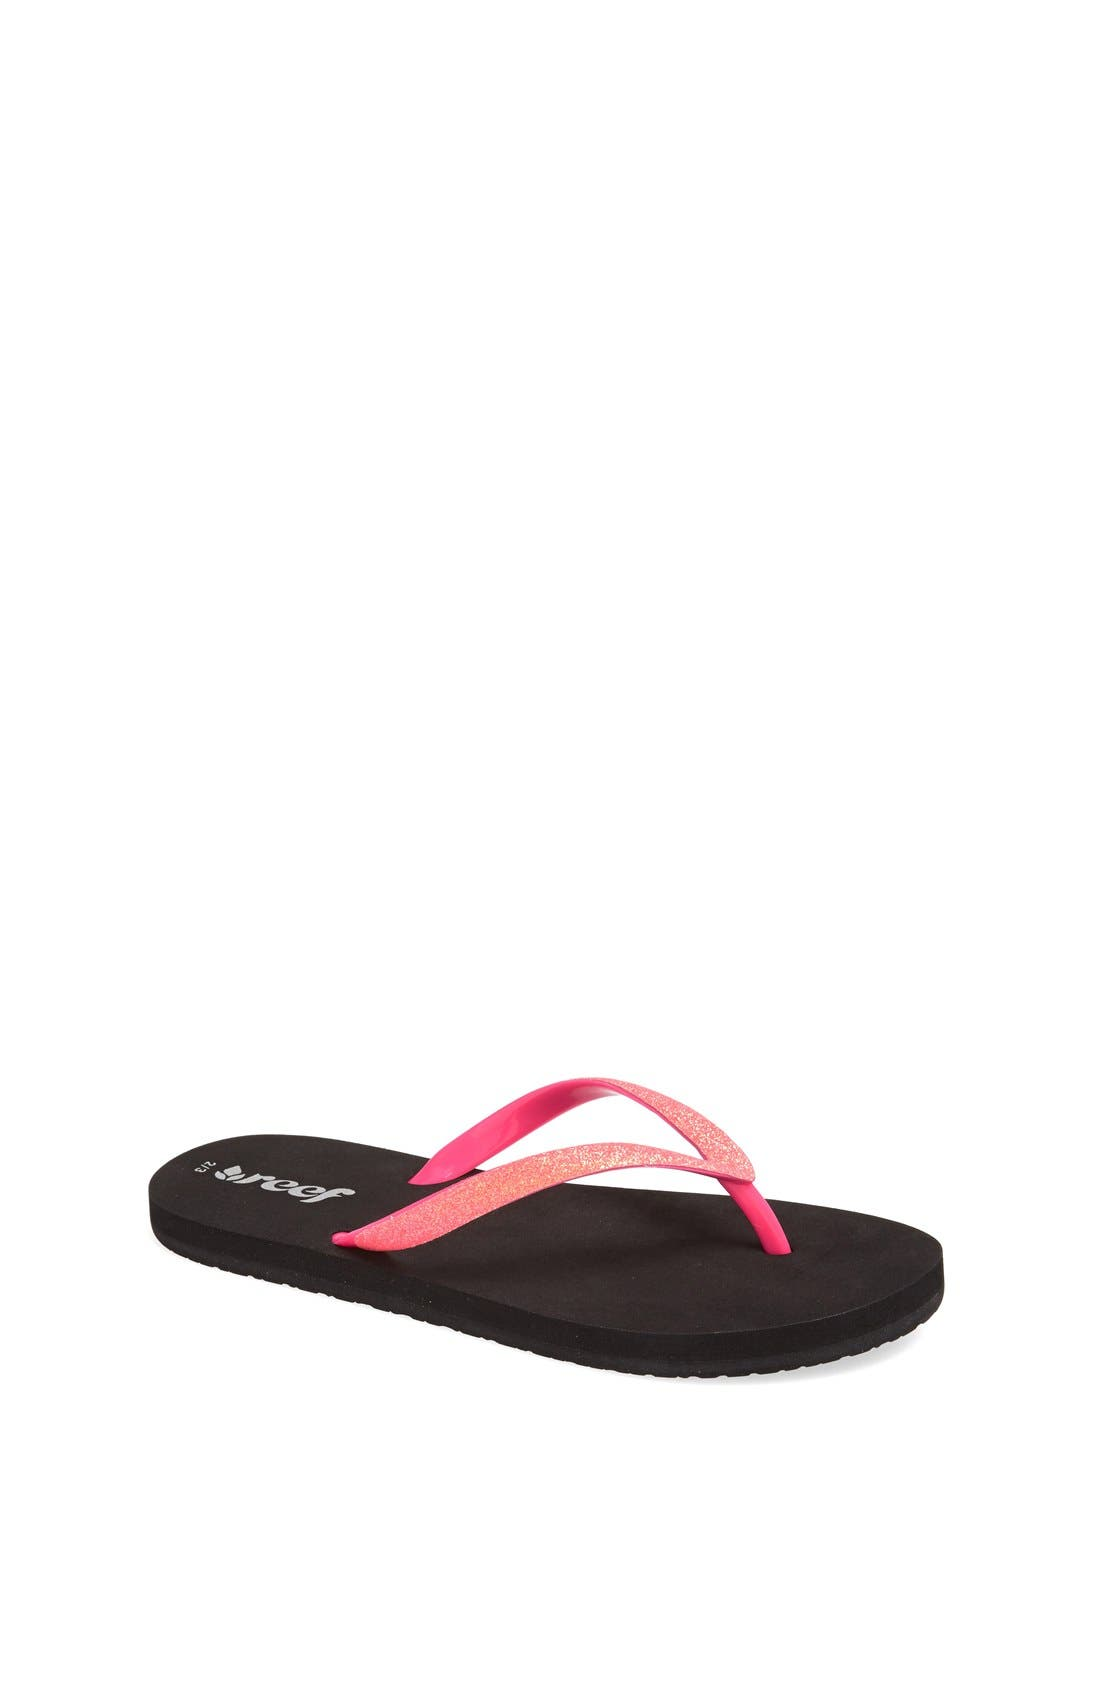 Main Image - Reef 'Little Stargazer' Flip Flop (Toddler, Little Kid & Big Kid)